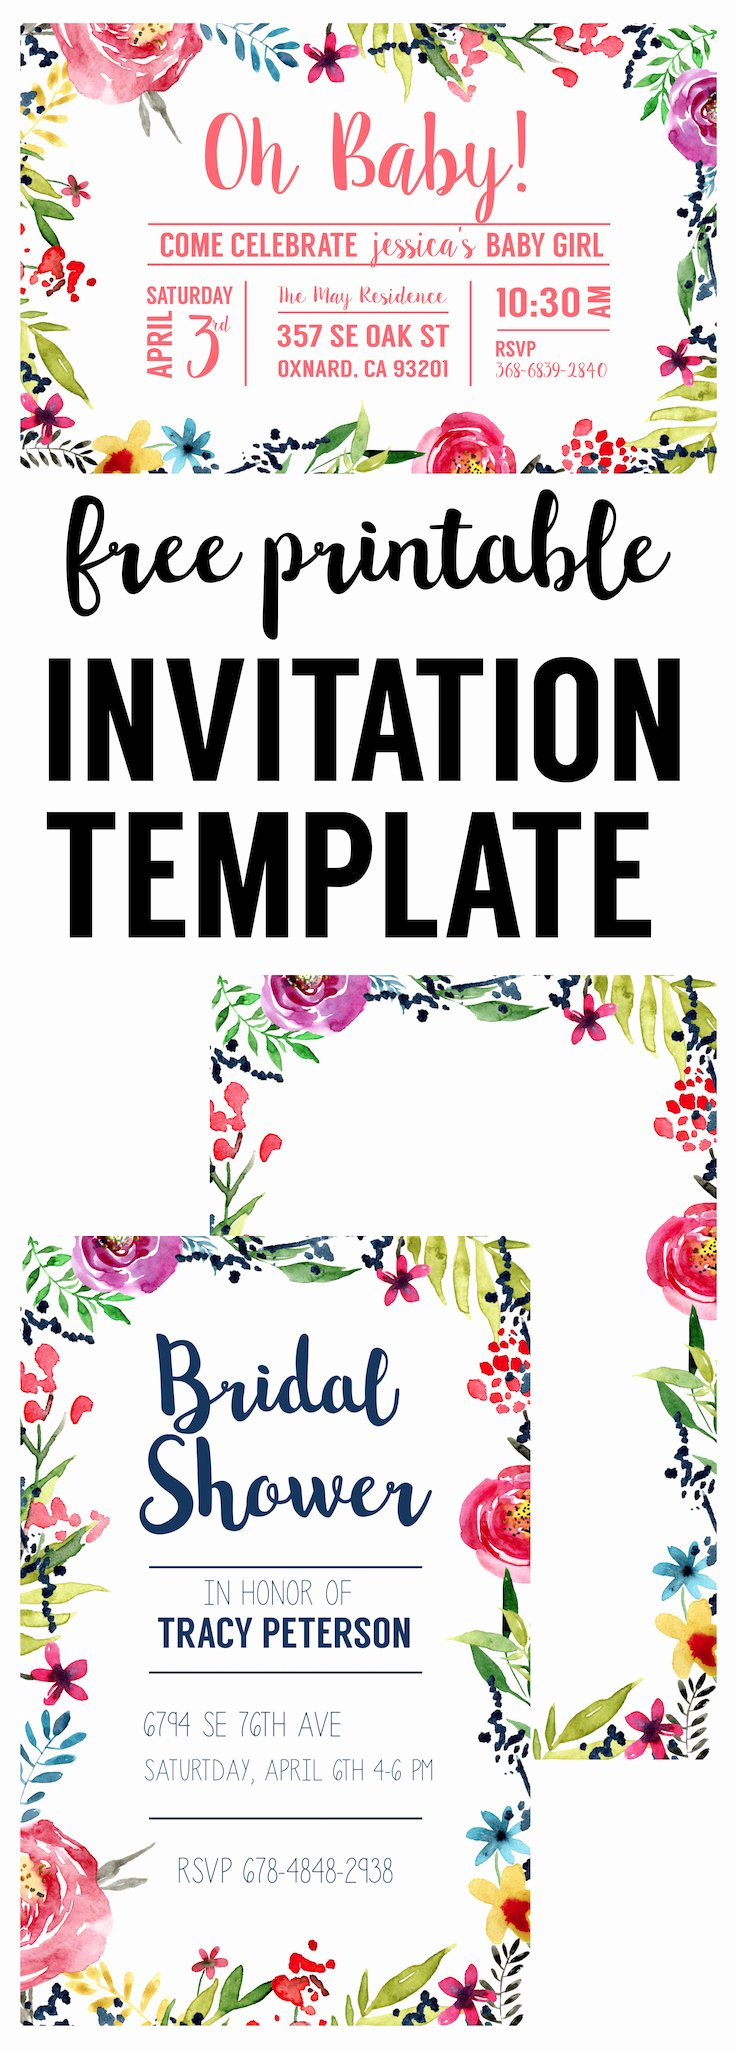 Baby Shower Invitation Template Free Unique Floral Borders Invitations Free Printable Invitation